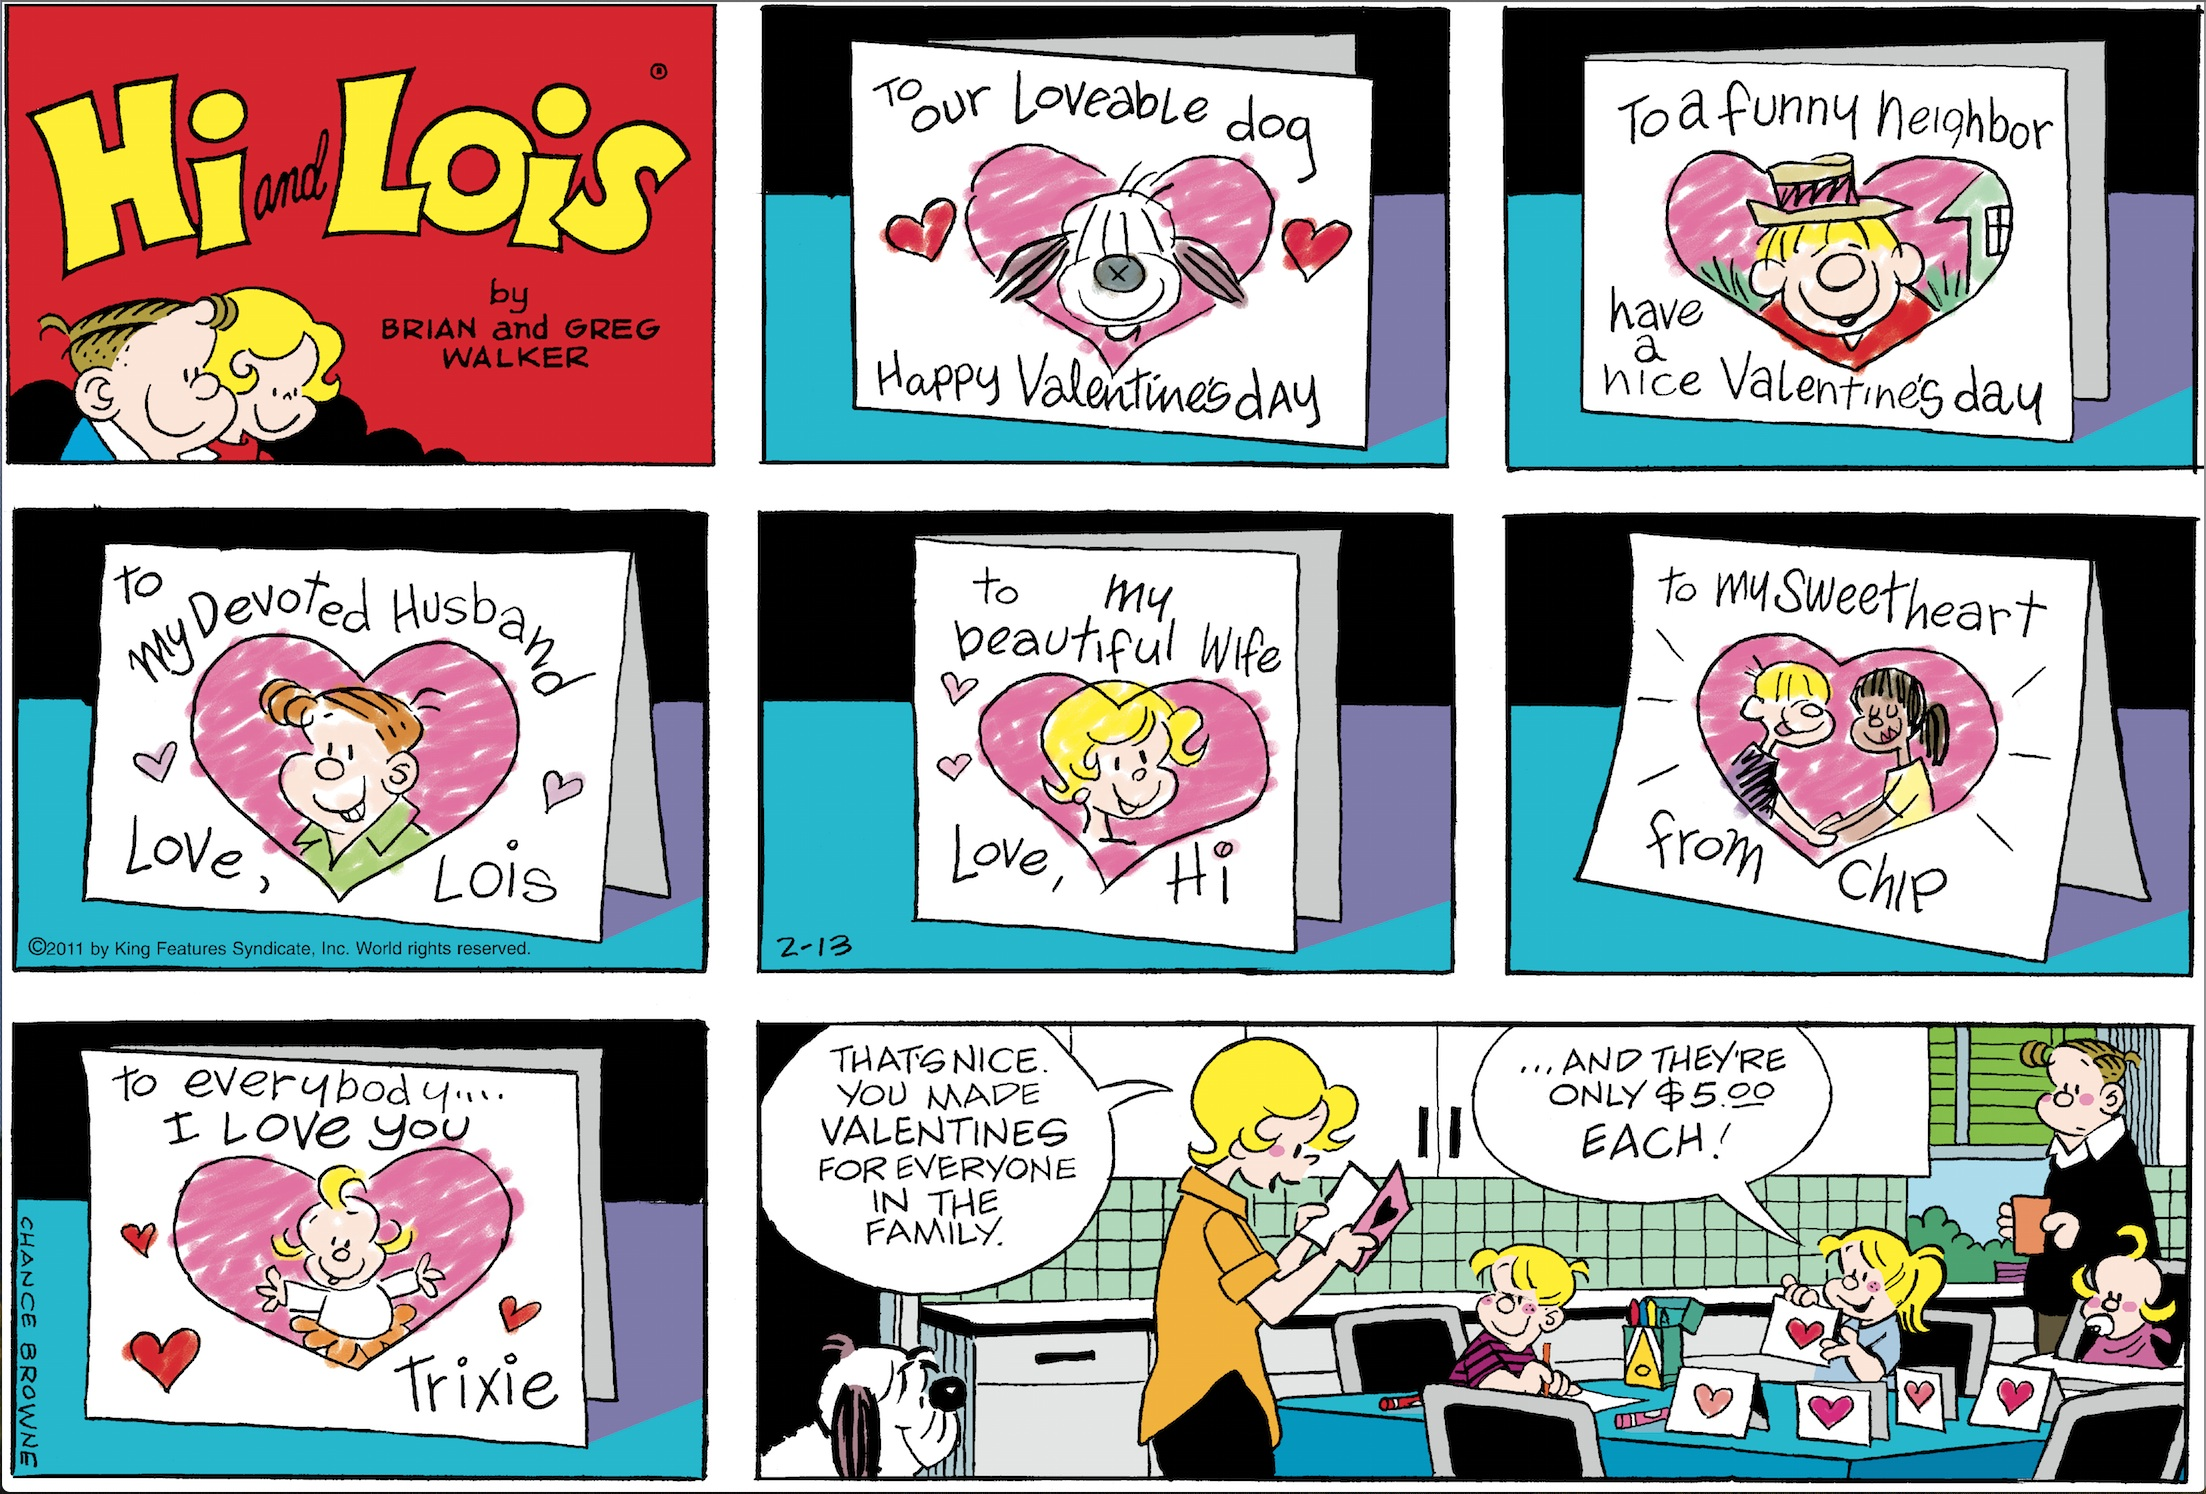 Hi and Lois Sunday page, February 13, 2011.